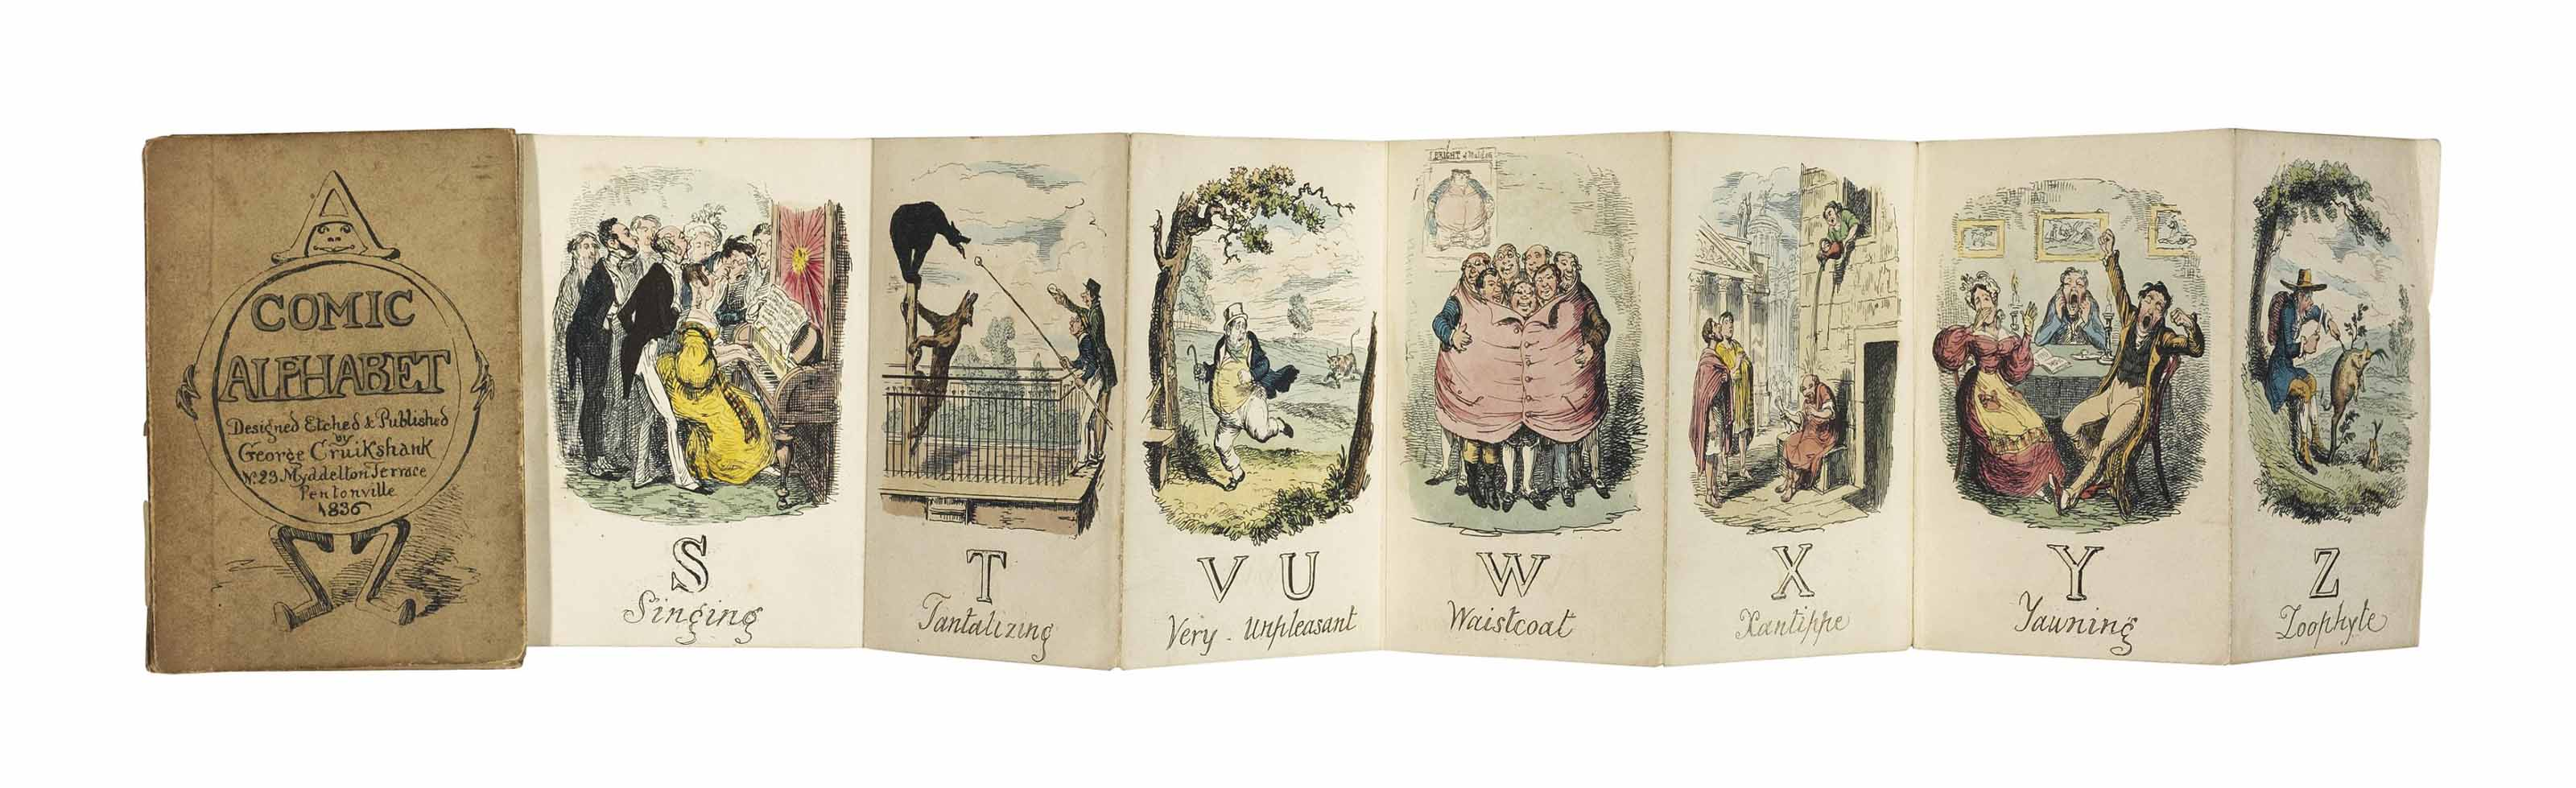 CRUIKSHANK, George (1792-1878). Comic Alphabet. London: Tilt, 1836. Small 8° (125 x 85mm). 24 etchings, all hand-coloured, on three sheets joined and concertina-folded. (Neatly torn and detached at first fold, one plate with short tear in the blank margin, light offsetting, light soiling.) Original illustrated boards (spine chipped, some wear and soiling). Provenance: Prince Henry, Duke of Gloucester (bookplate; his sale, Christie's London, 26-27 January 2006, part lot 668).